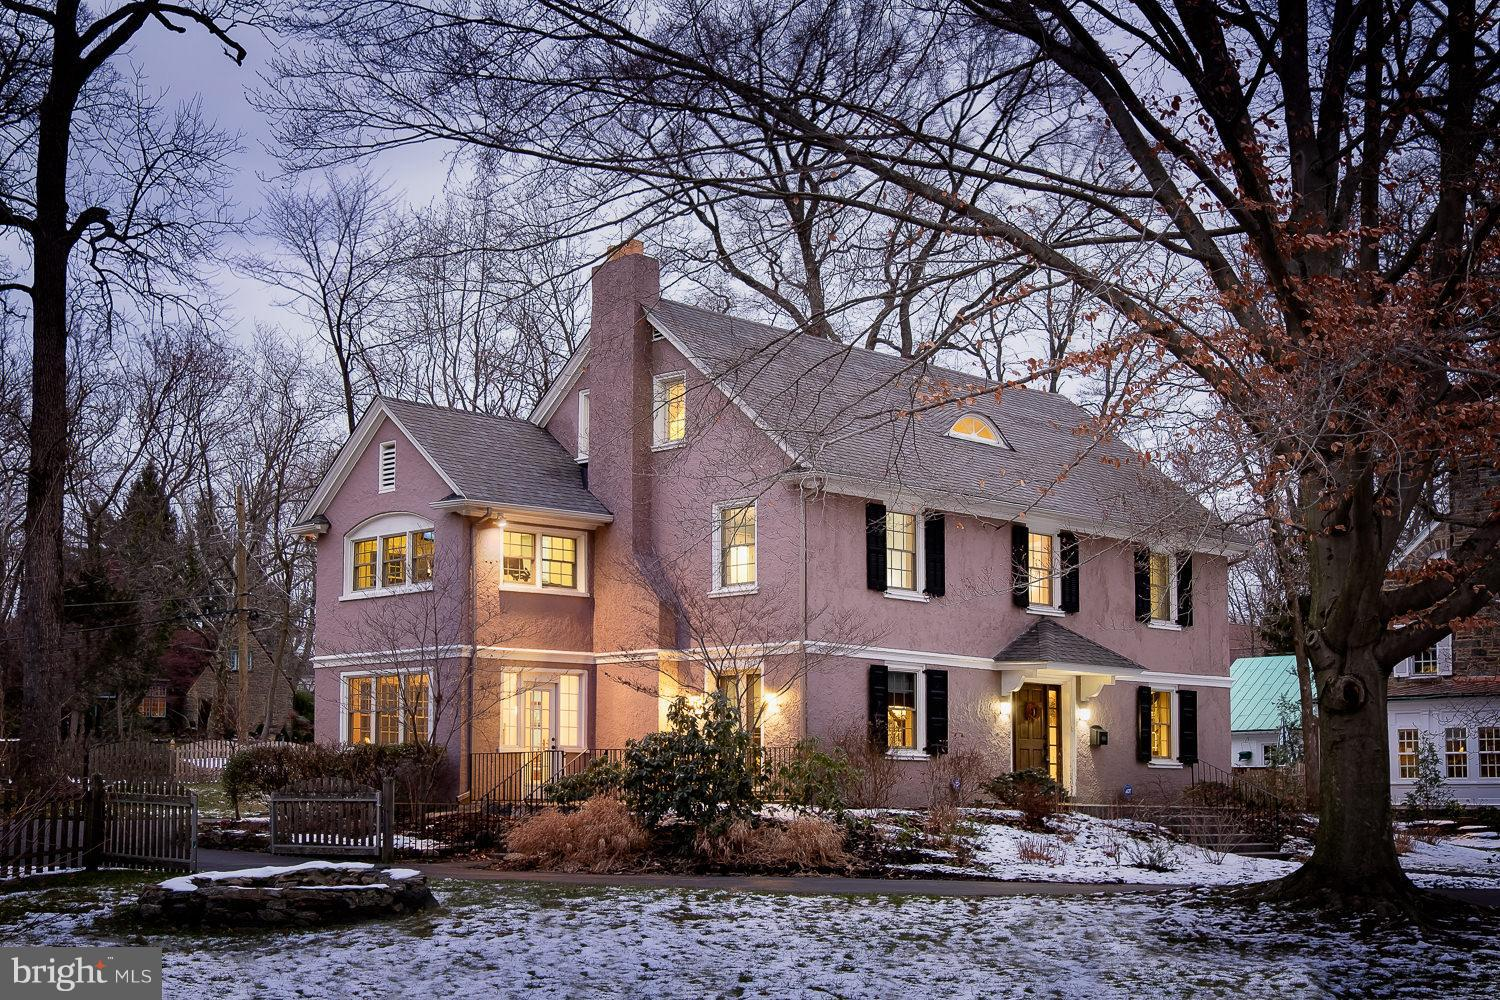 600 N CHESTER ROAD, SWARTHMORE, PA 19081